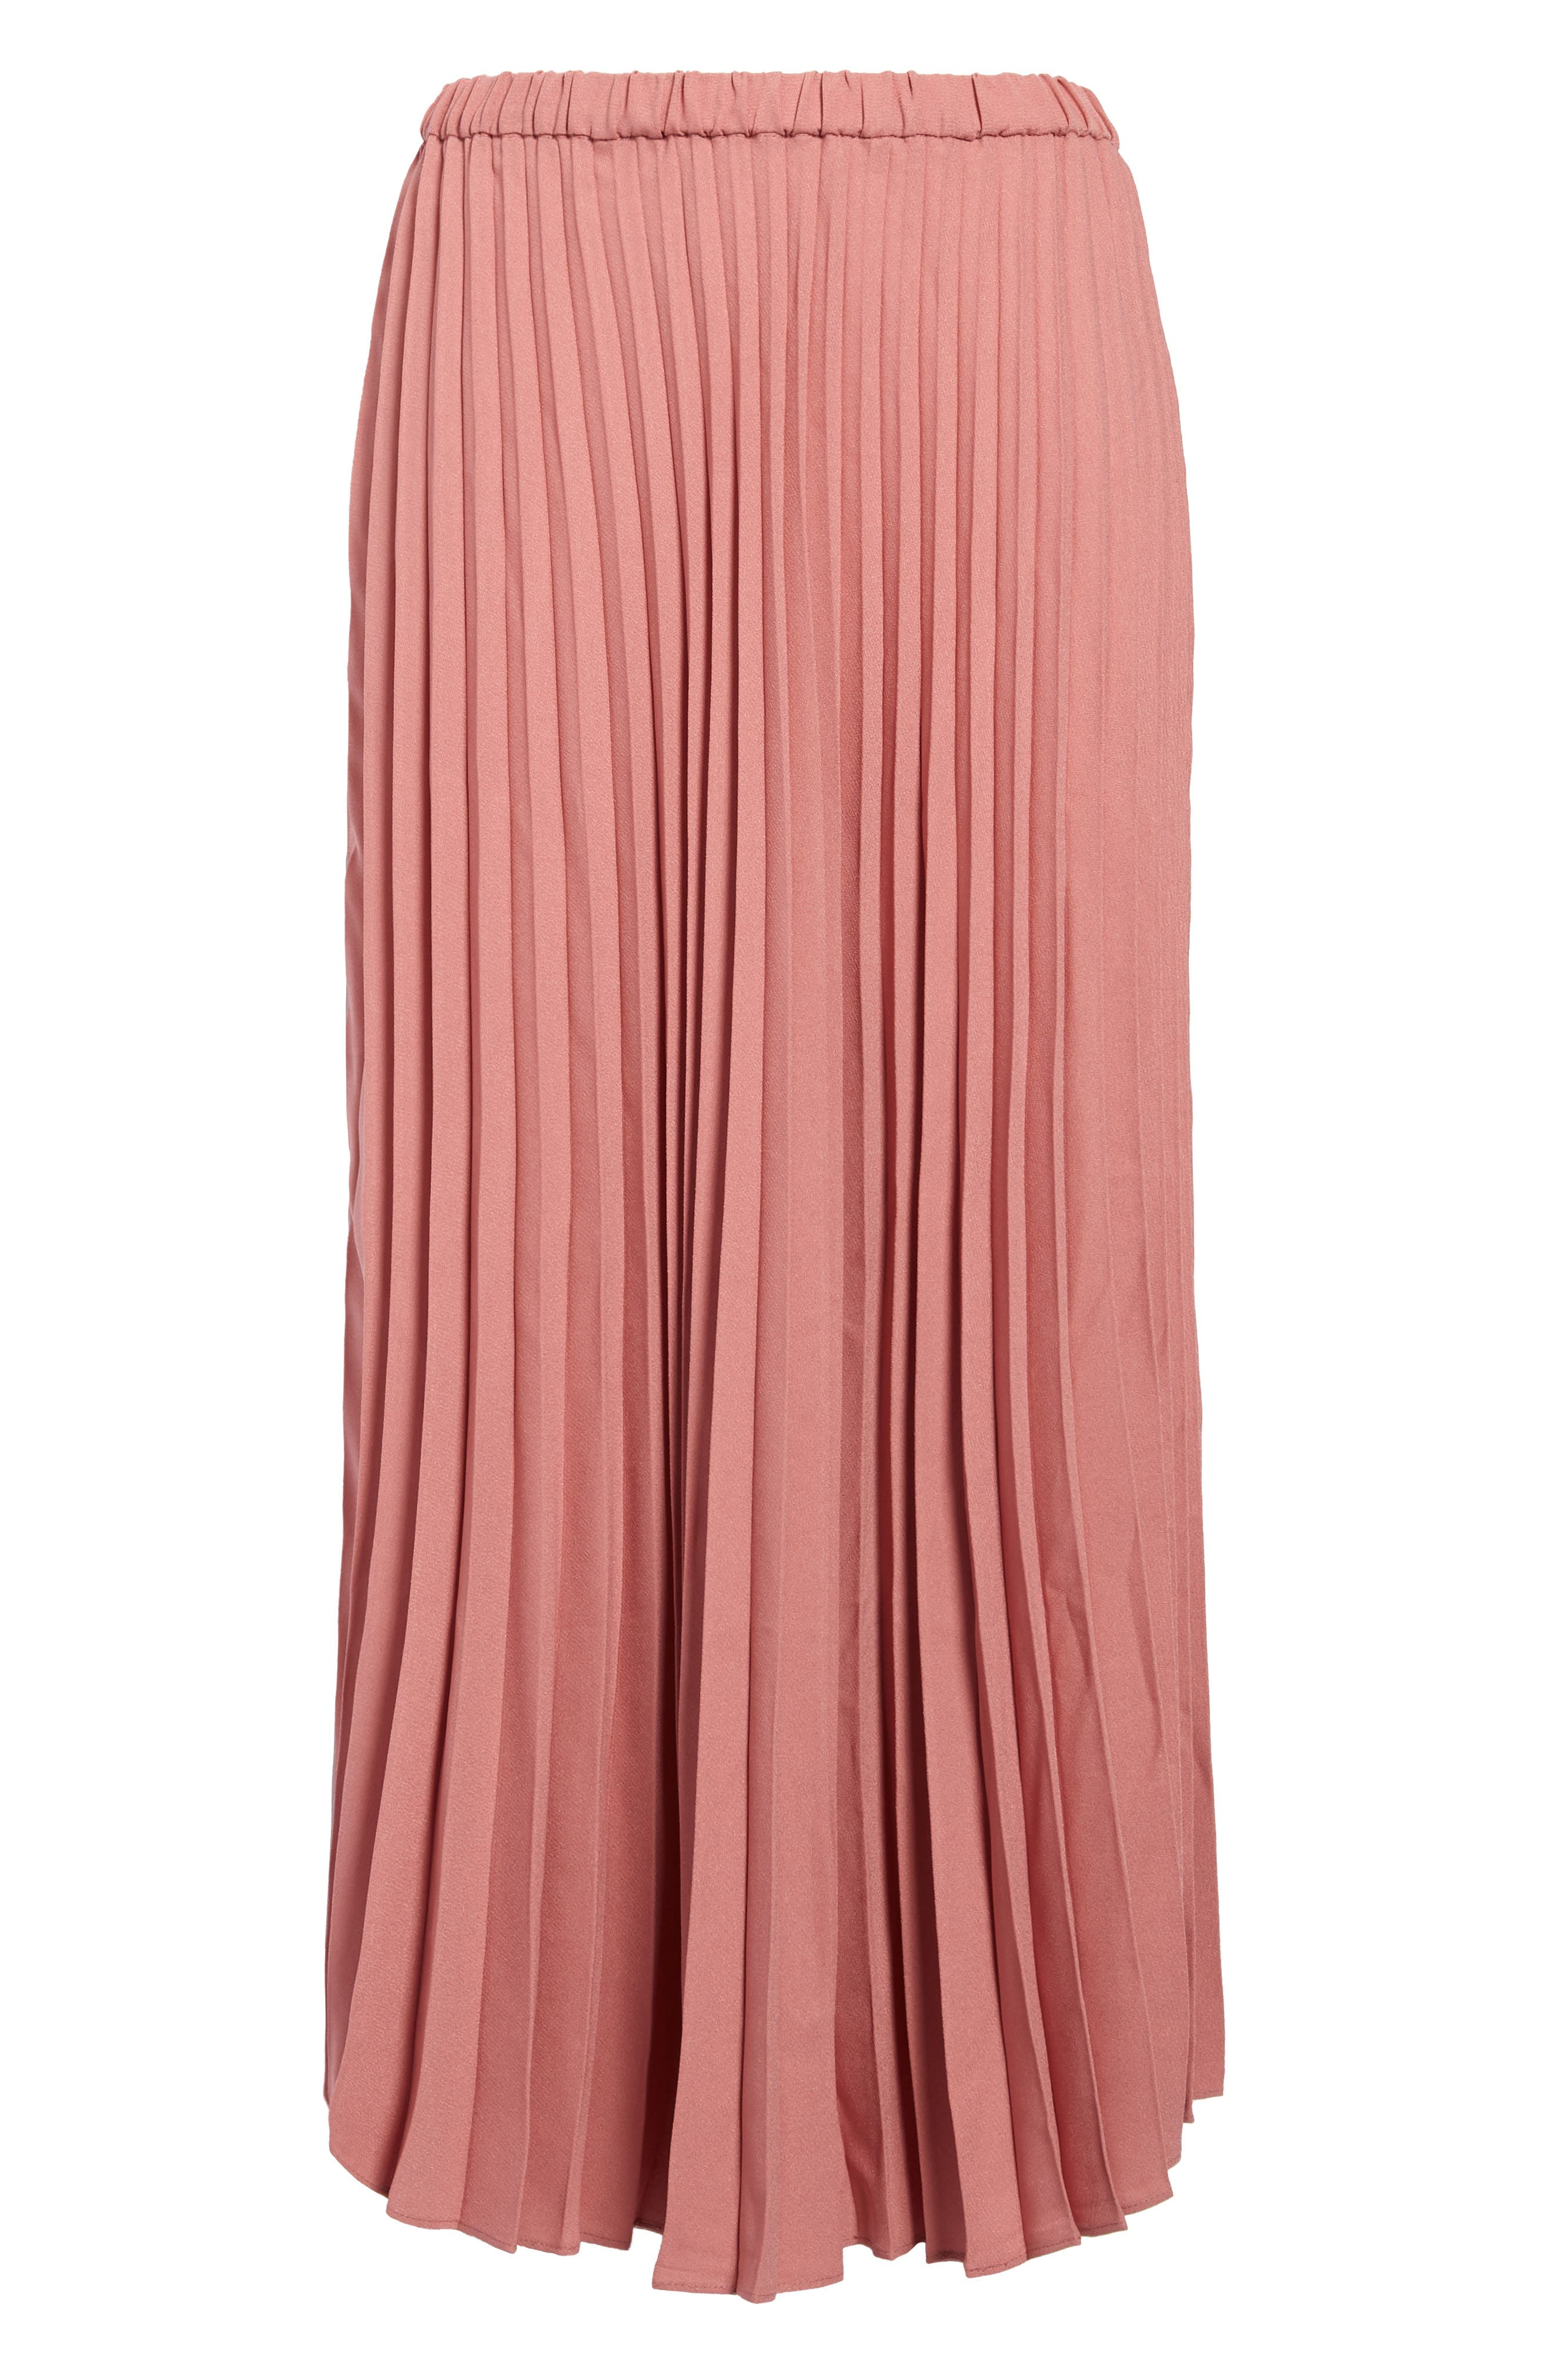 Accordion pleats enhance the swish and sway of this effortless pull-on skirt cut from lightweight crepe into a graceful, calf-grazing midi length. Style Name: Halogen Pleated Midi Skirt (Regular & Petite). Style Number: 5794831. Available in stores.